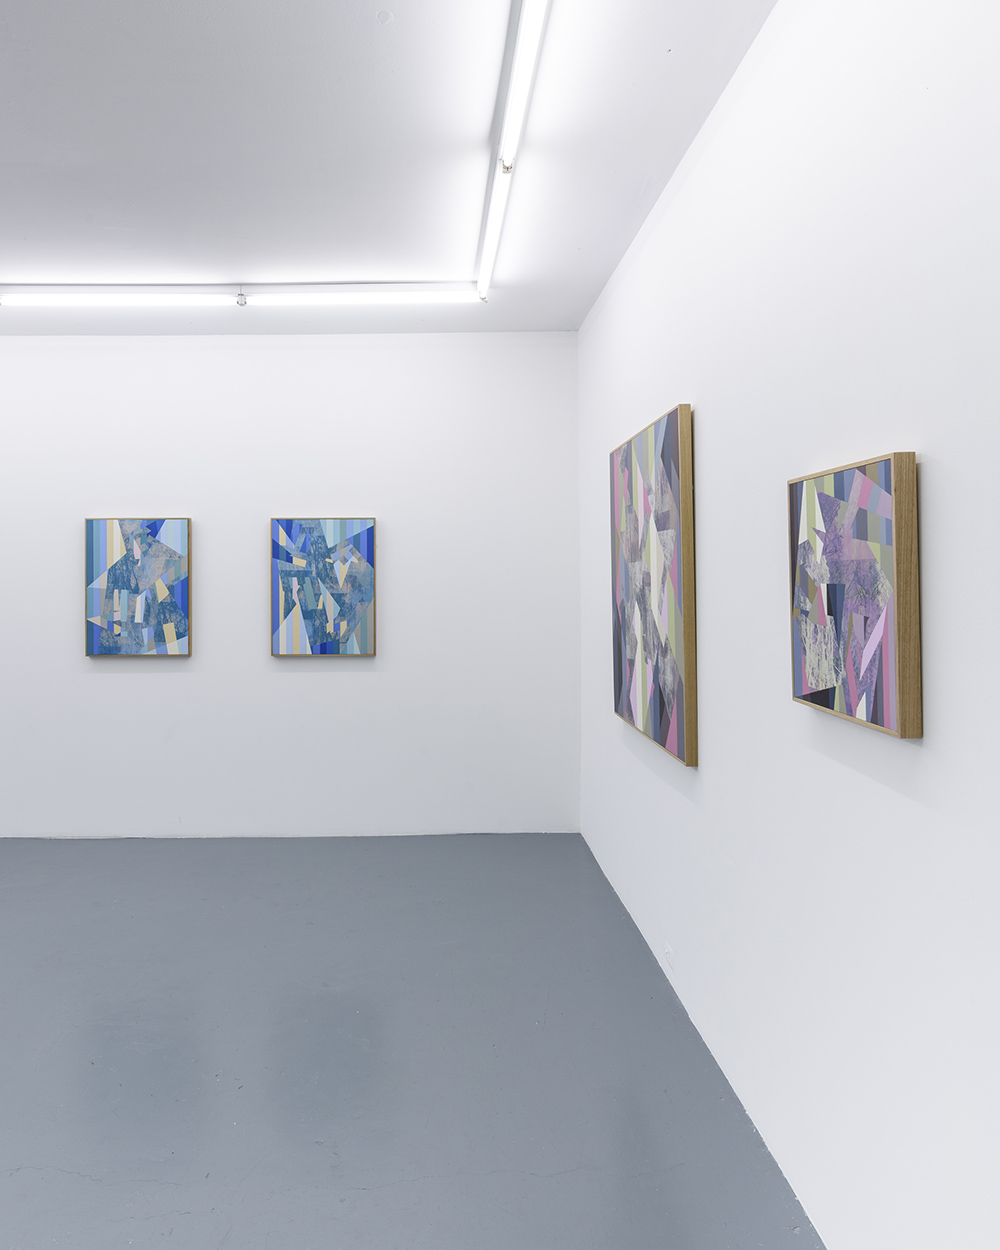 Installation: A part and between, Five Walls<br>Winter Sun, Aurora, Parapet and Splinter<br>Image credit: Christopher Sanders